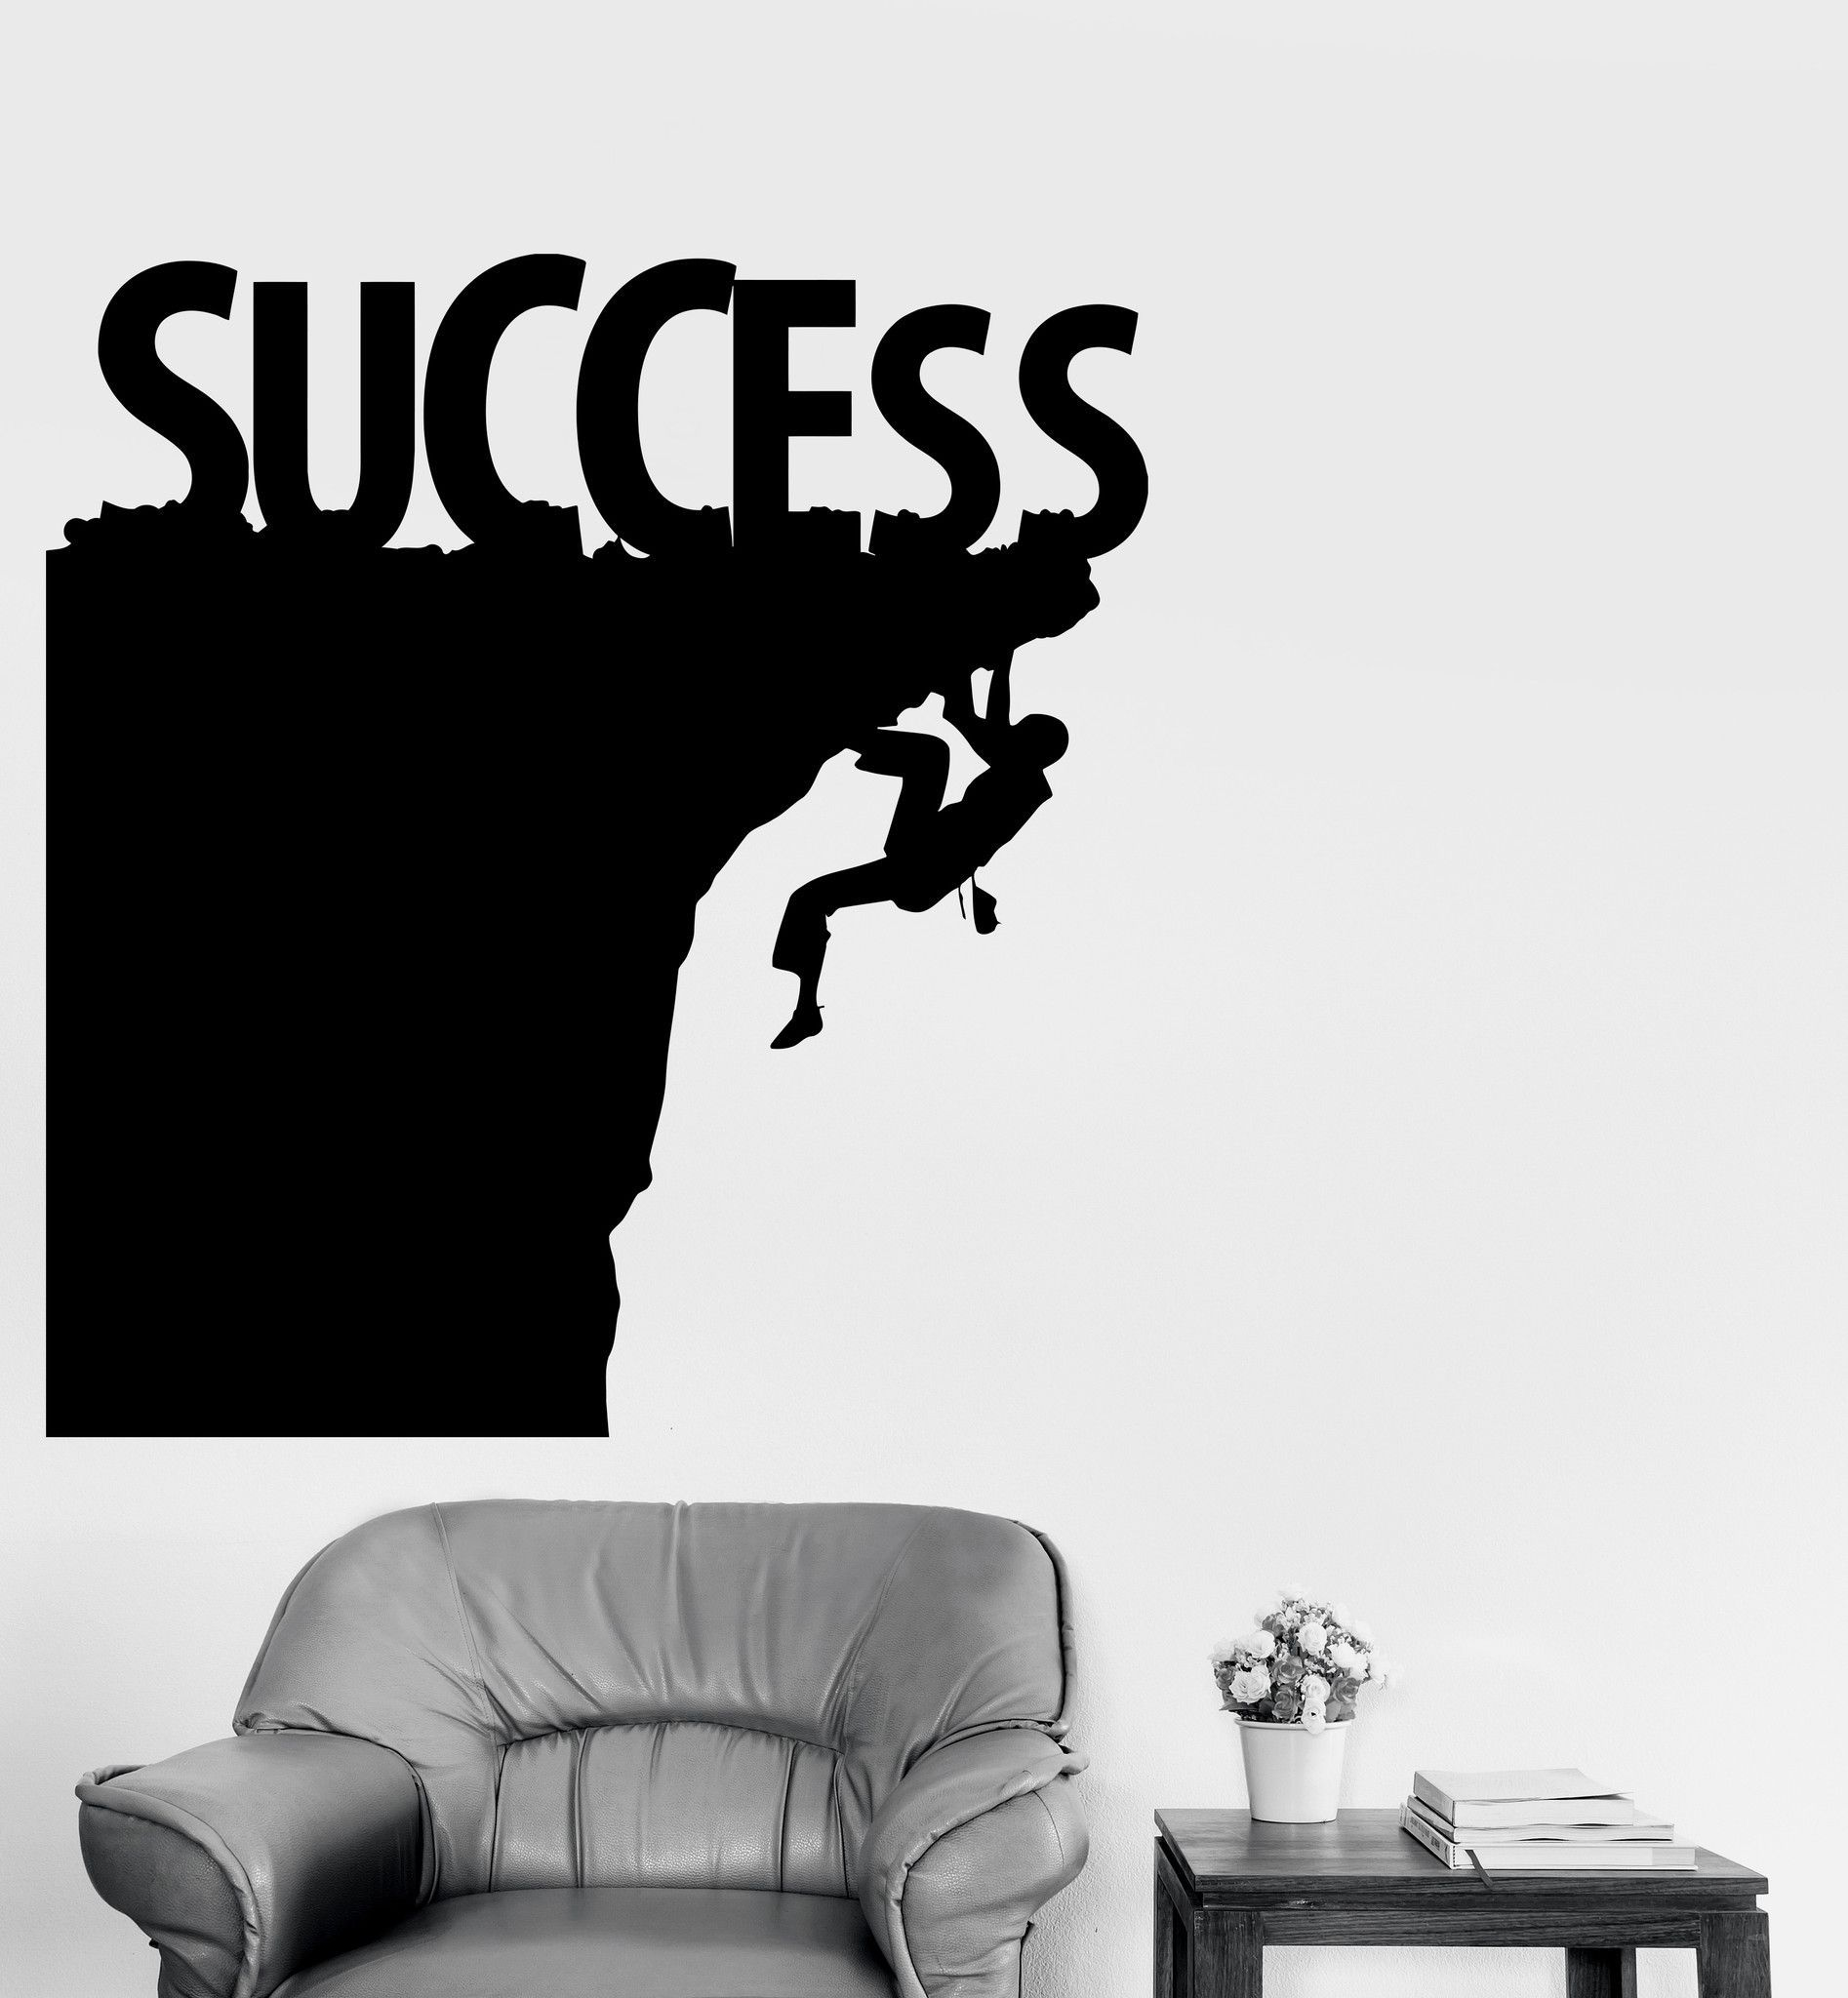 vinyl wall decal success motivation office decor stickers mural vinyl wall decal success motivation office decor stickers mural ig3900